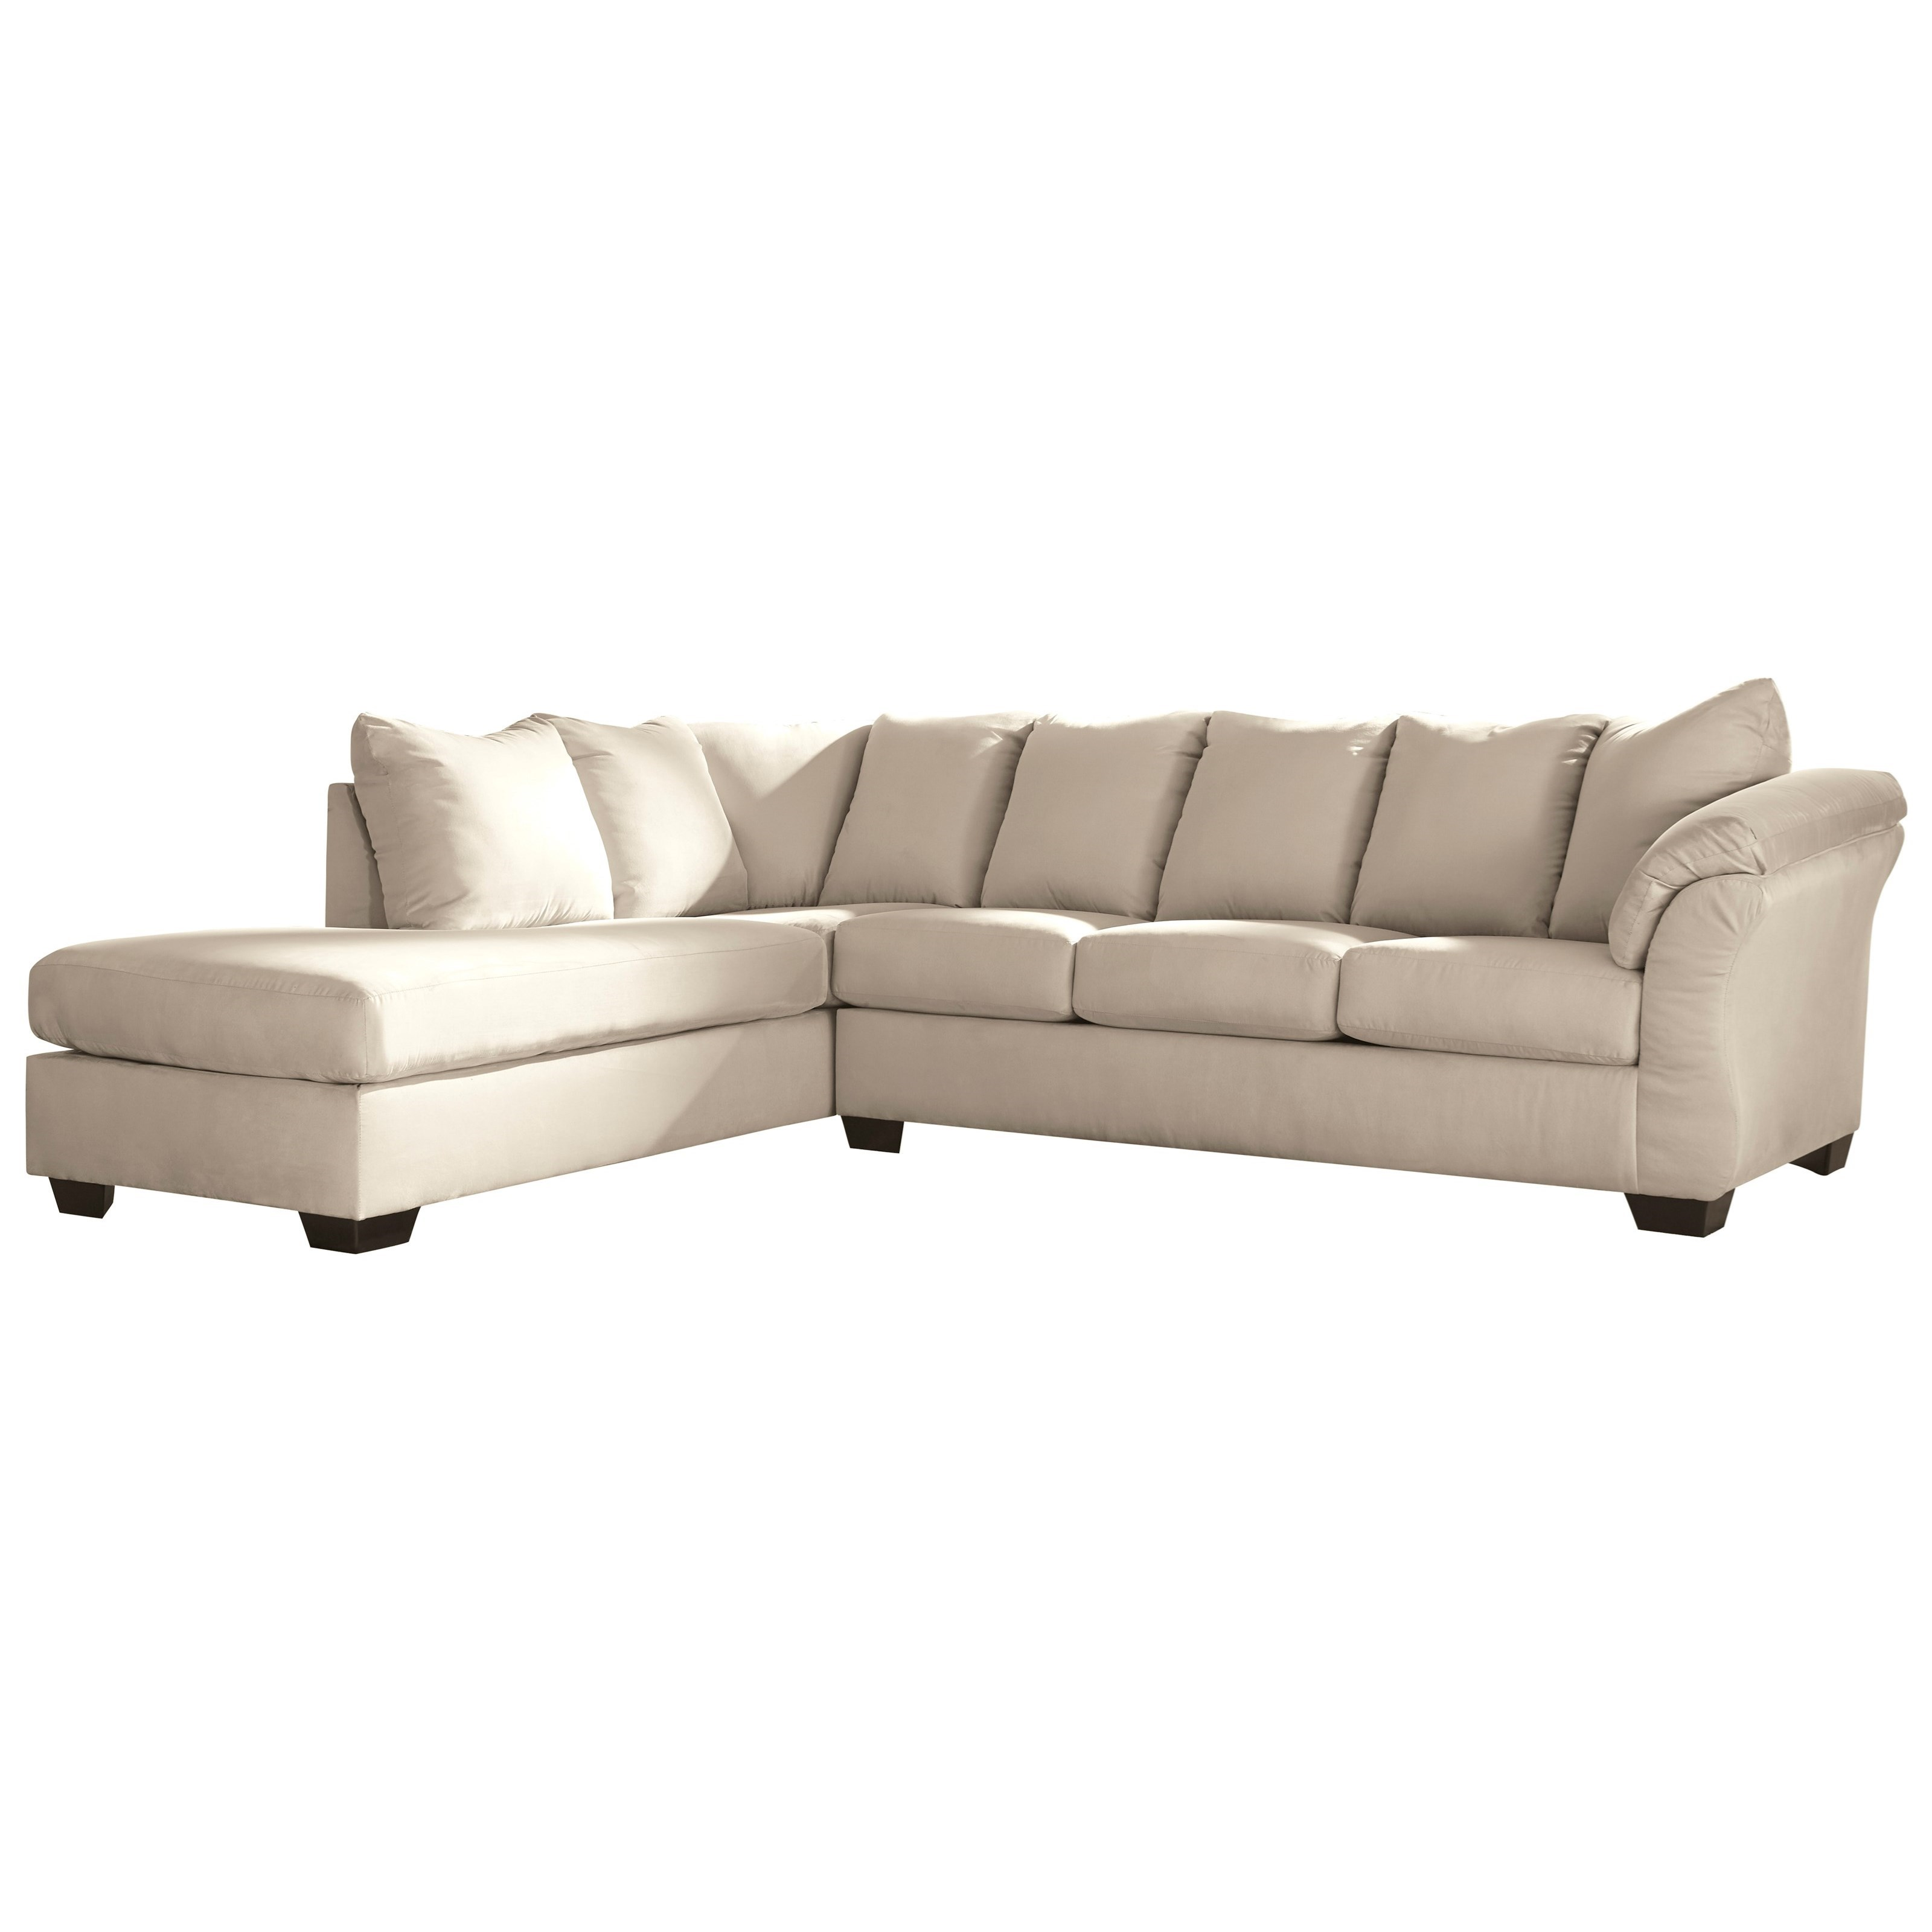 Contemporary Sectional: Contemporary 2-Piece Sectional Sofa With Left Chaise By